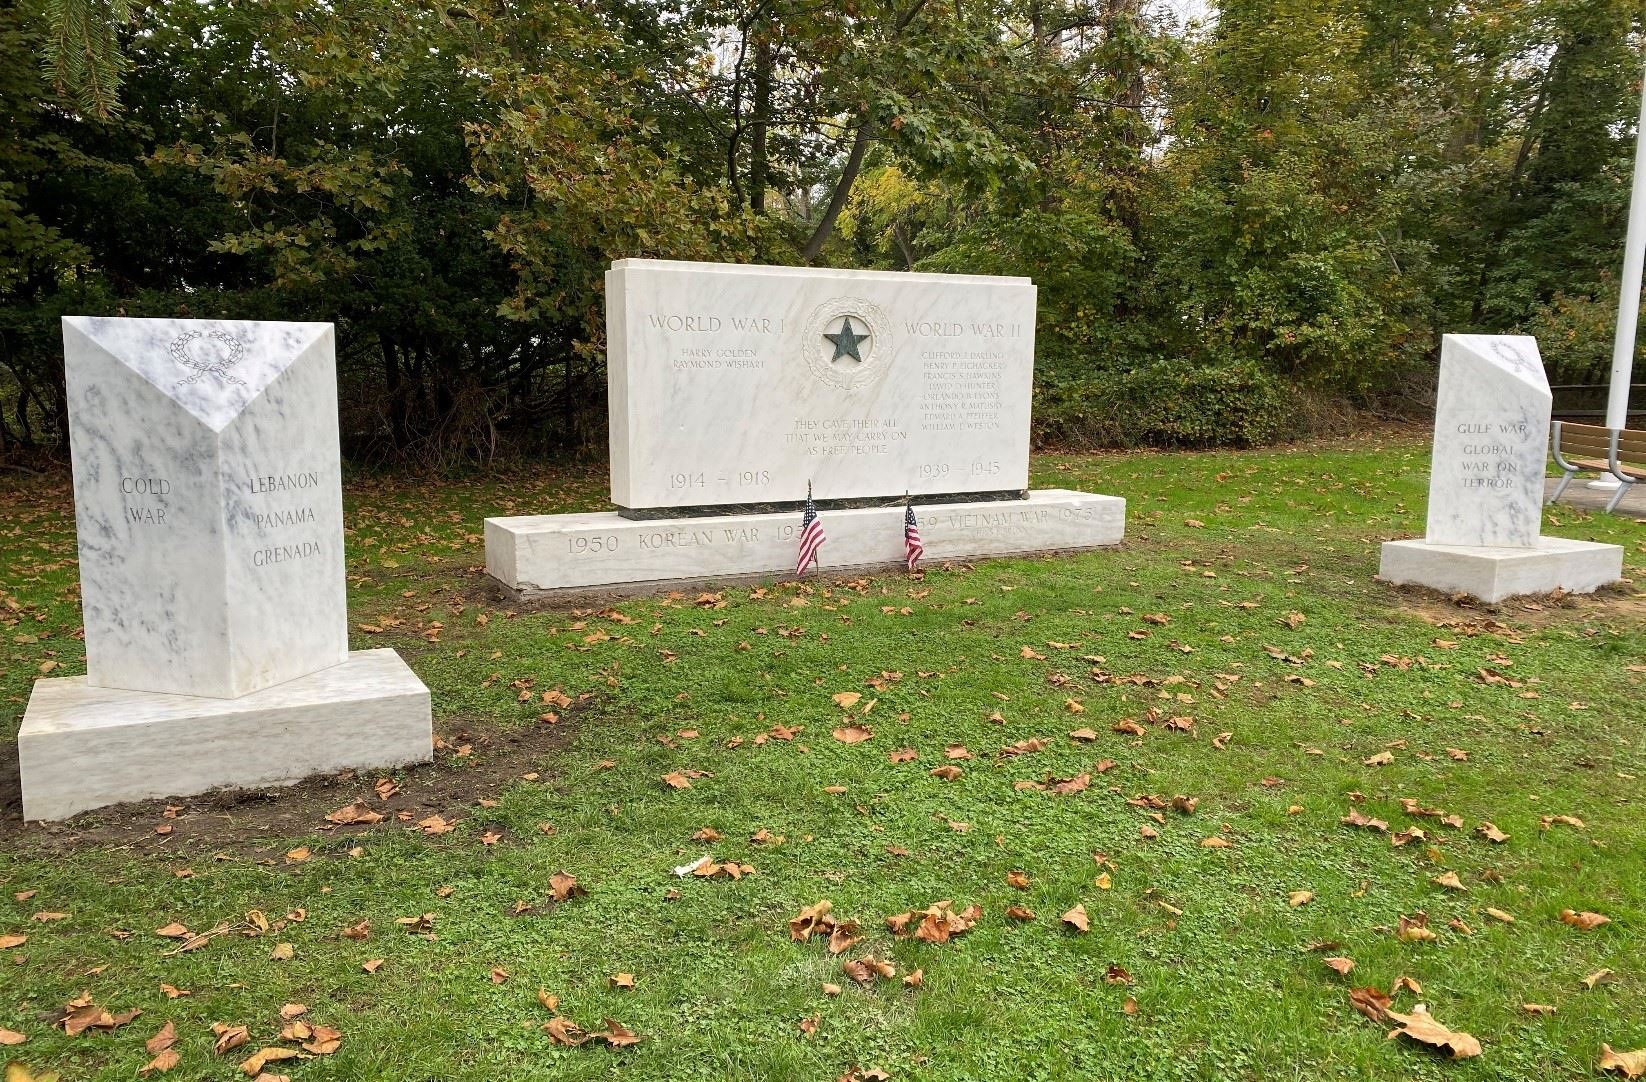 Mission Complete: Site Image of Final War Memorial Updates